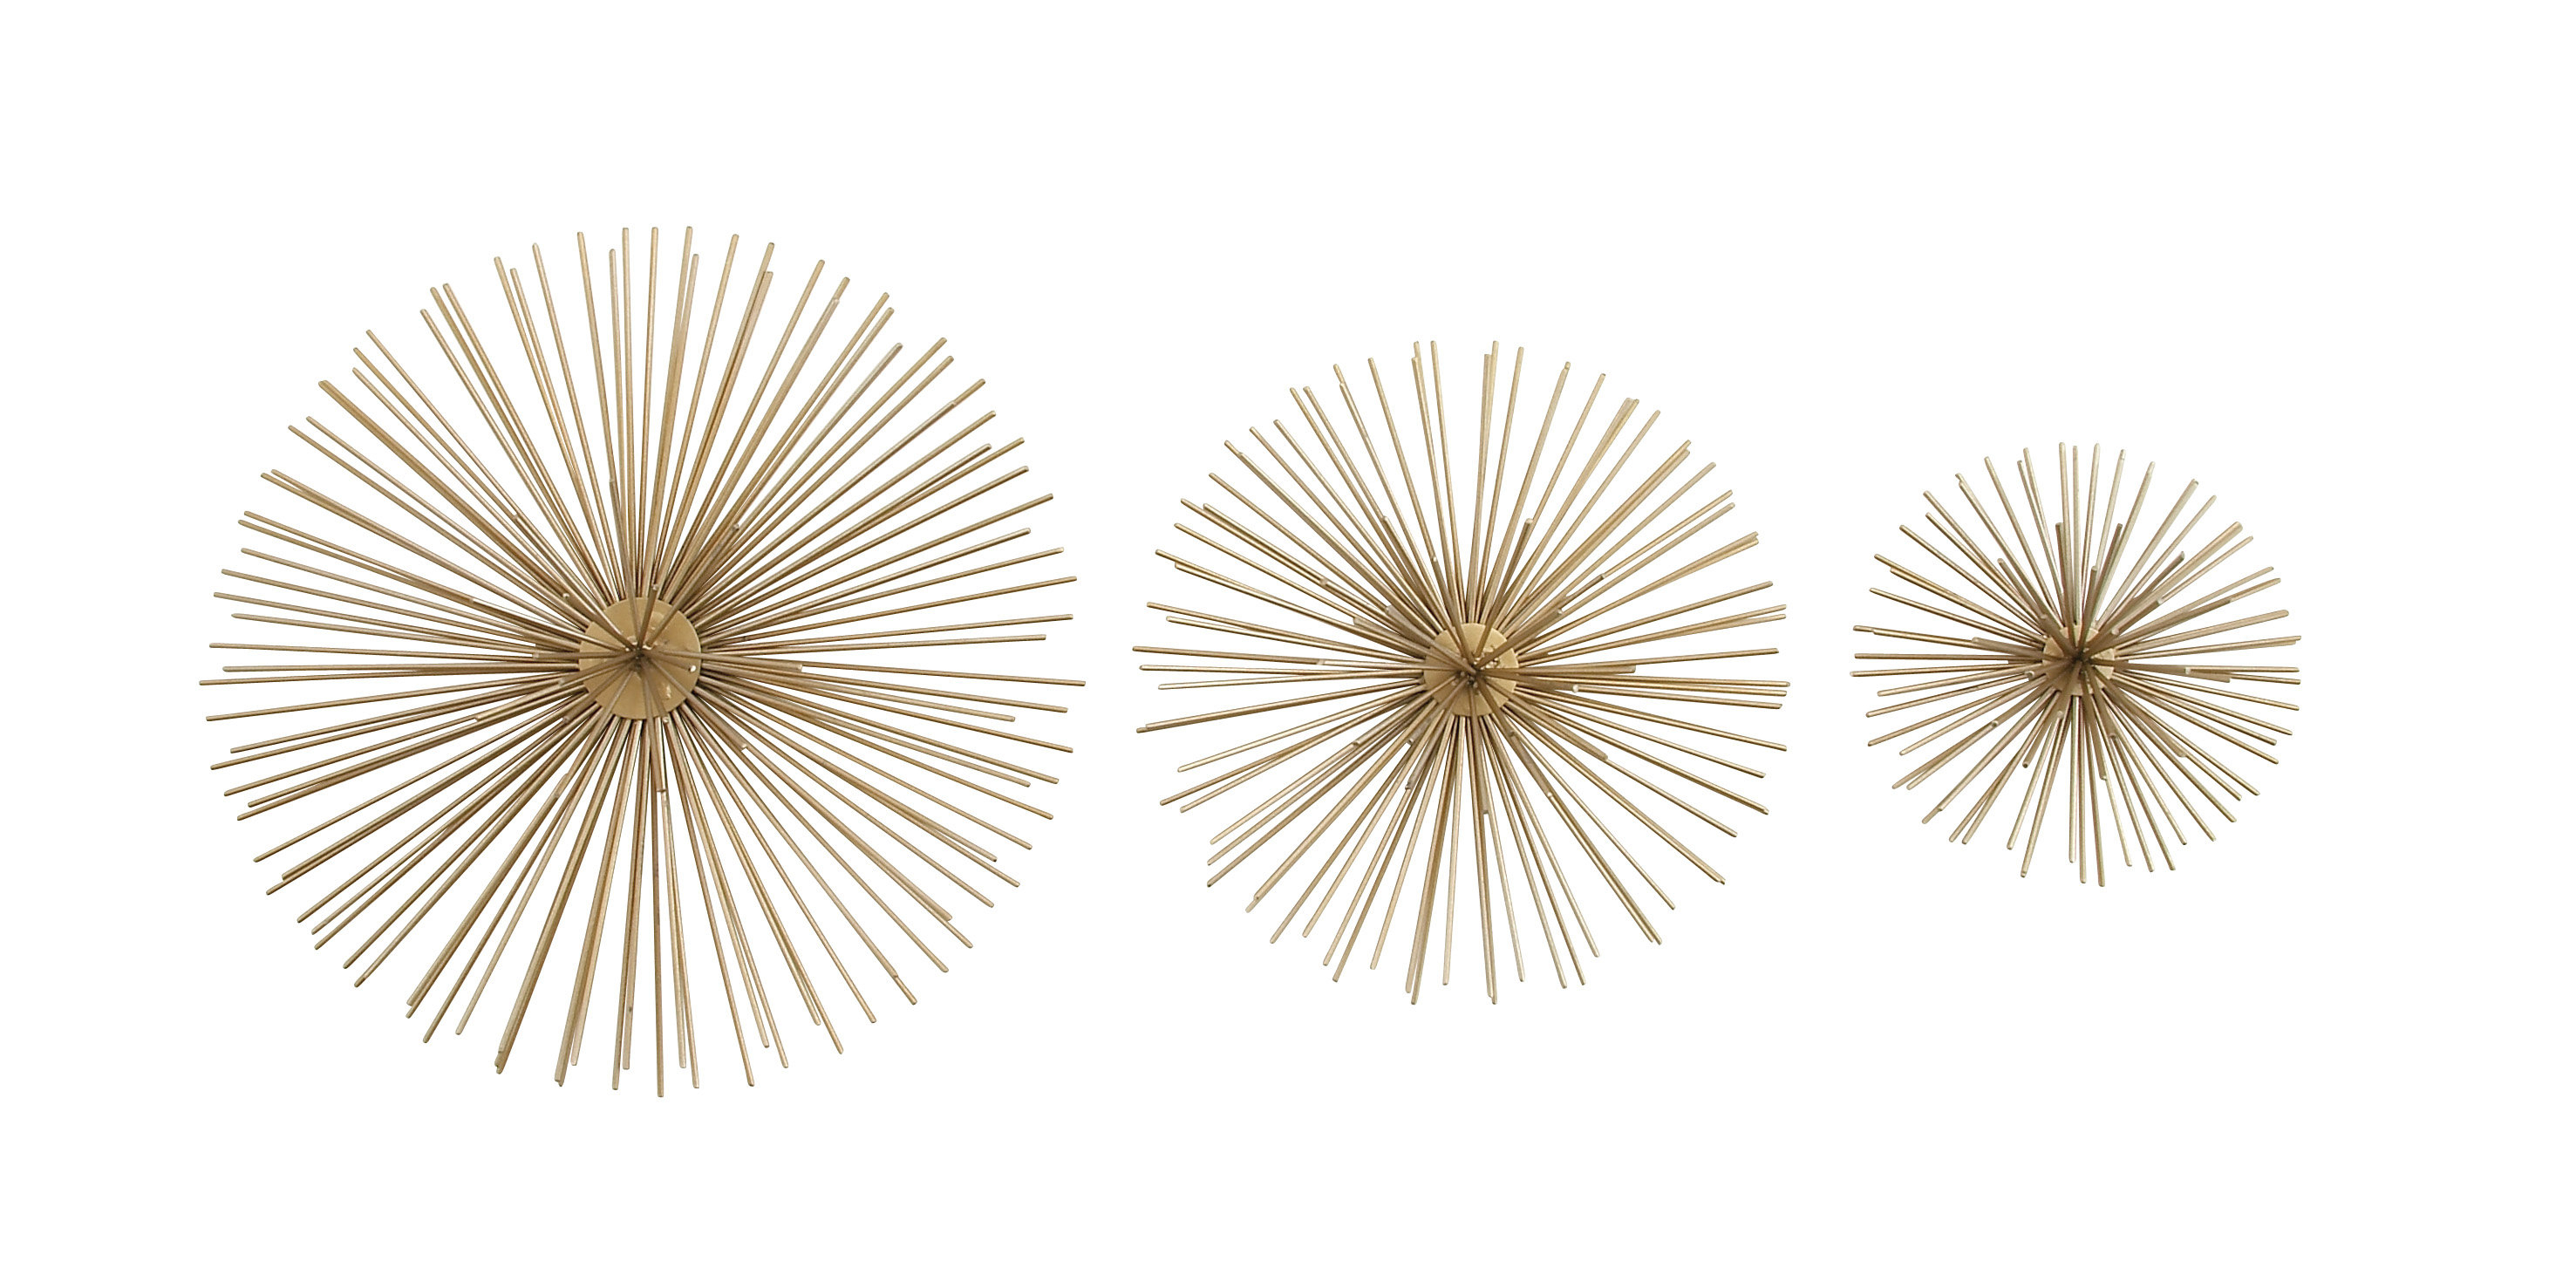 3 Piece Star Wall Decor Set With Set Of 3 Contemporary 6, 9, And 11 Inch Gold Tin Starburst Sculptures (View 5 of 30)